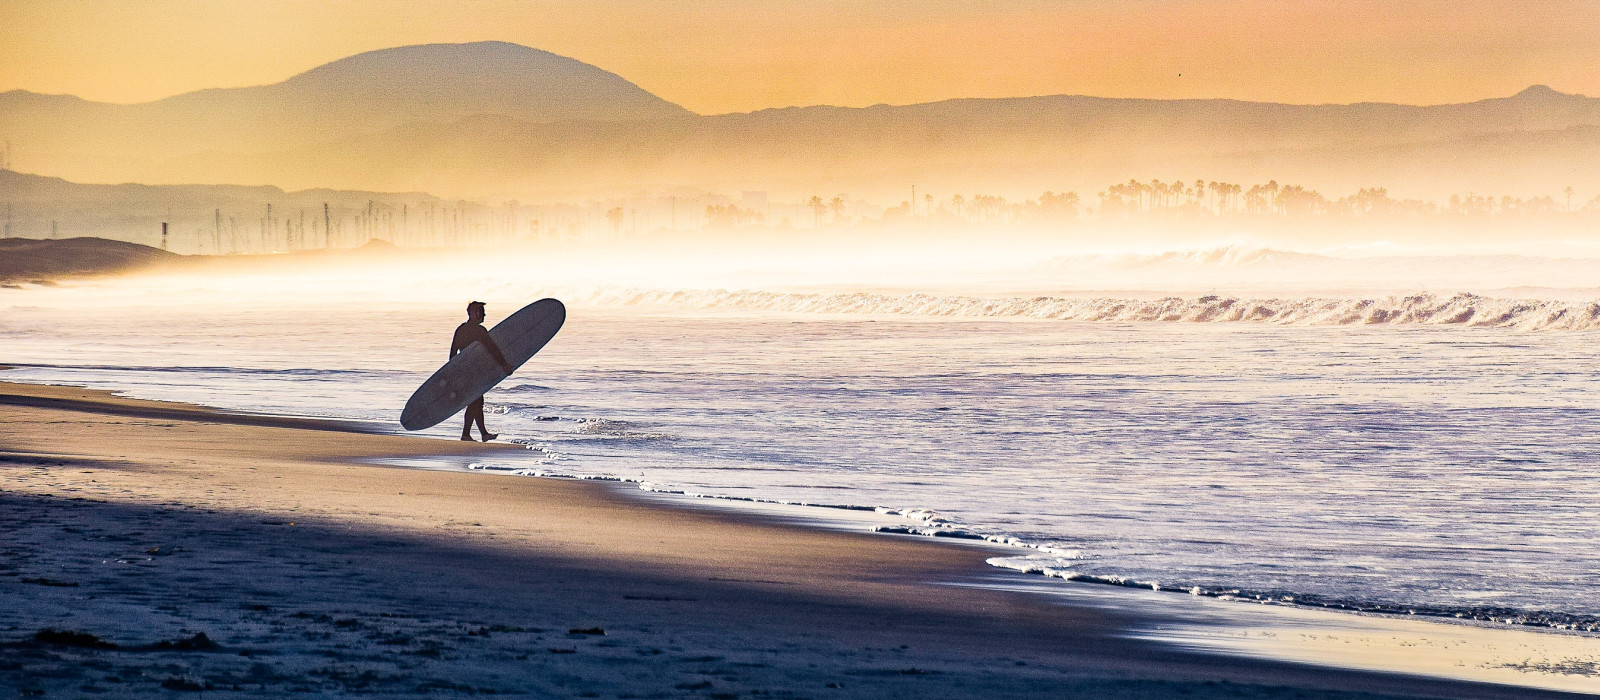 Early morning fog shrouds the coastline as this surfer enters the water in Coronado, California